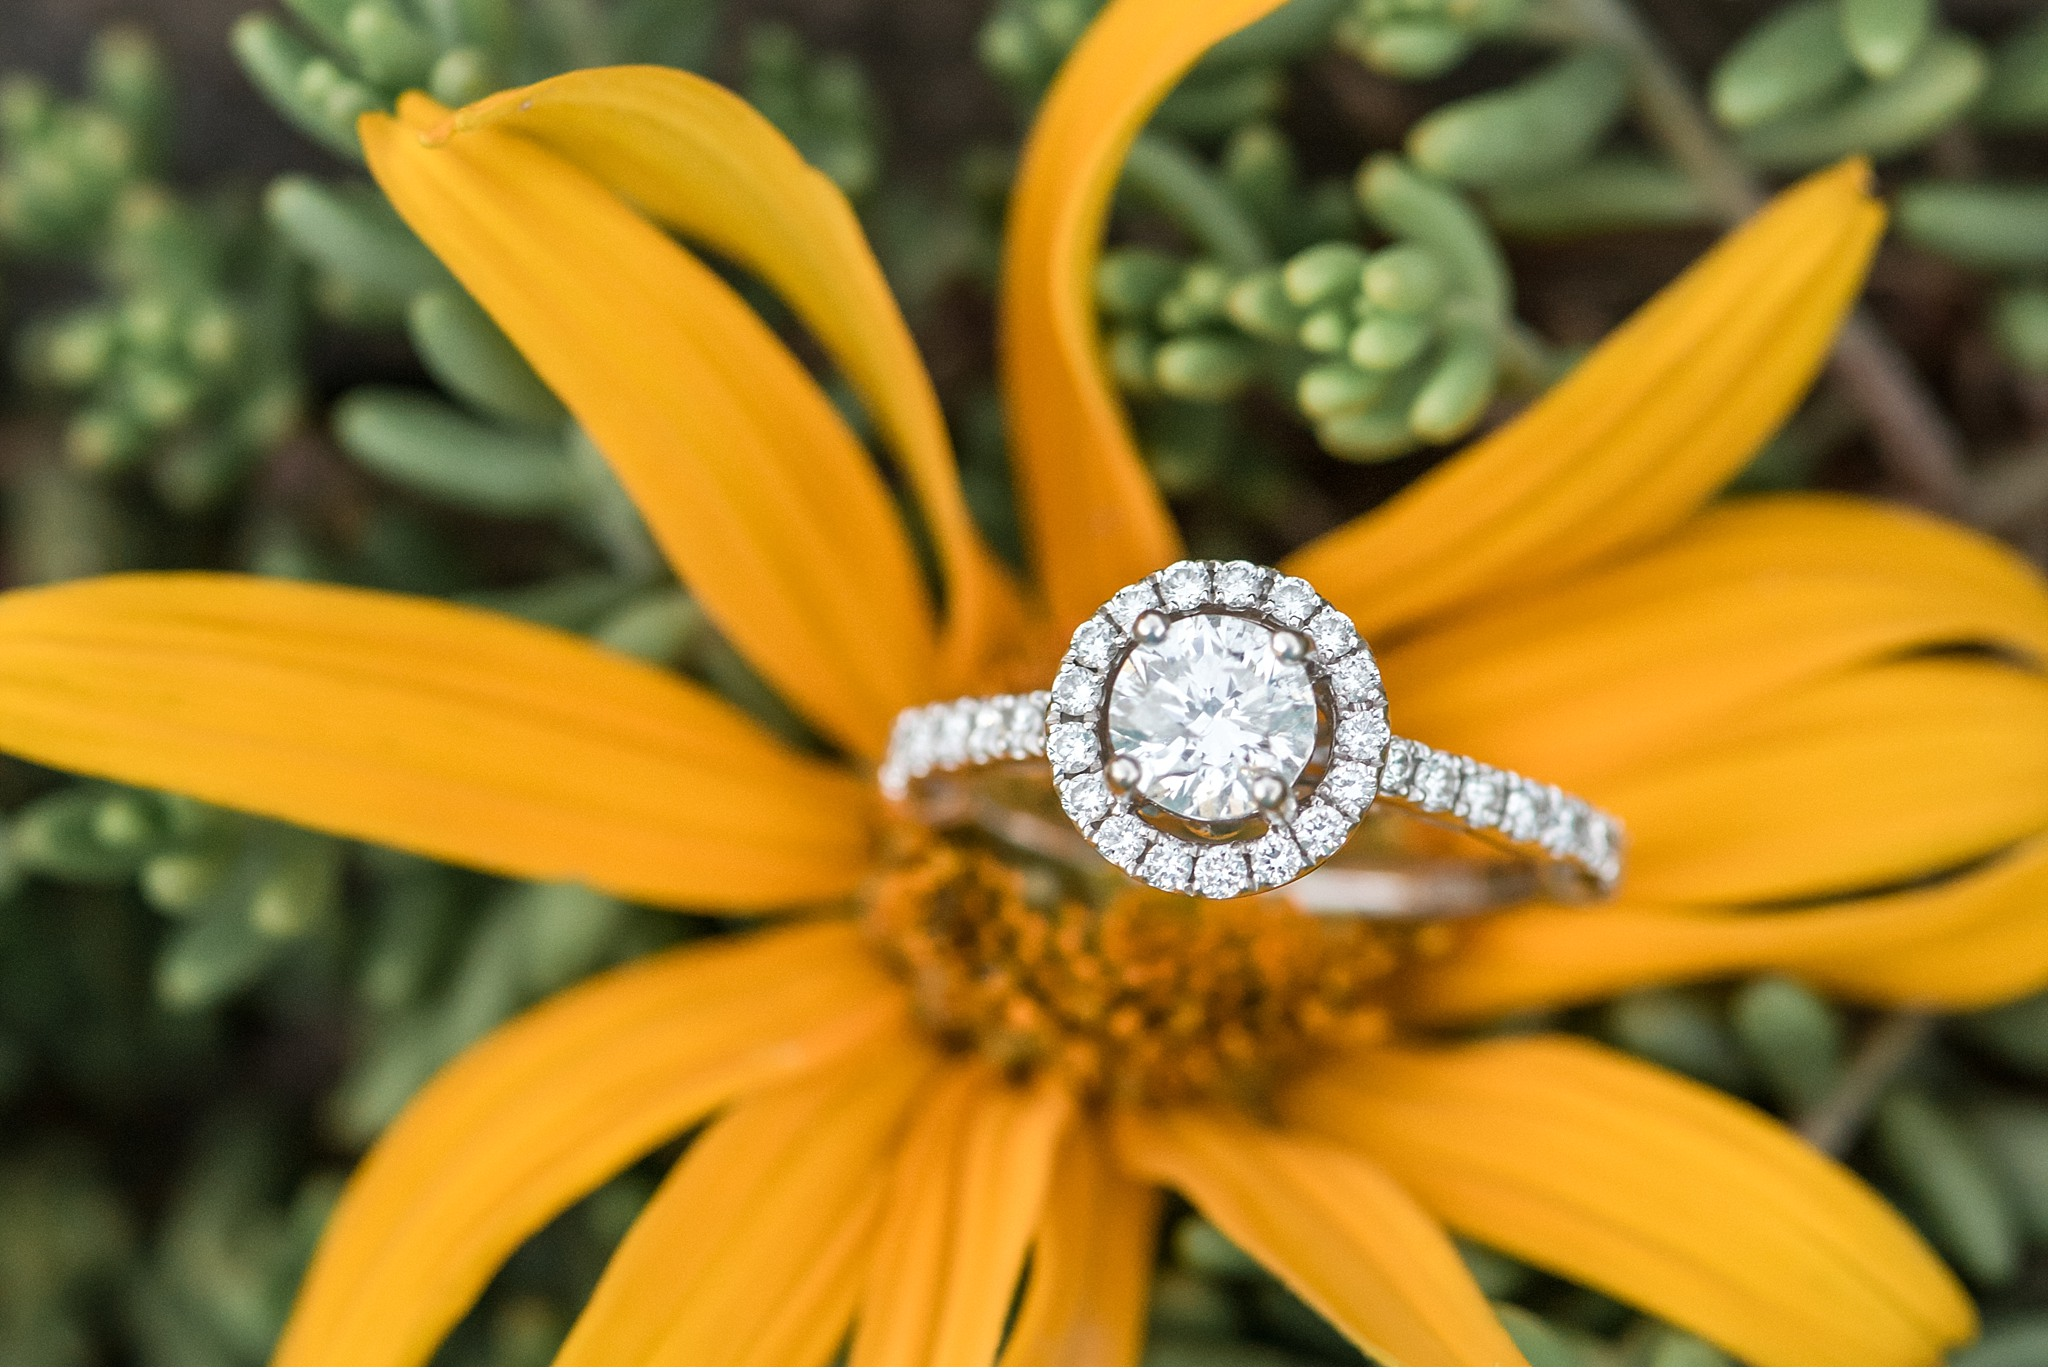 Diamond Ring Details Grings Mill Berks County Light and Airy engagement session at golden sun Wedding Photography photo_1817.jpg